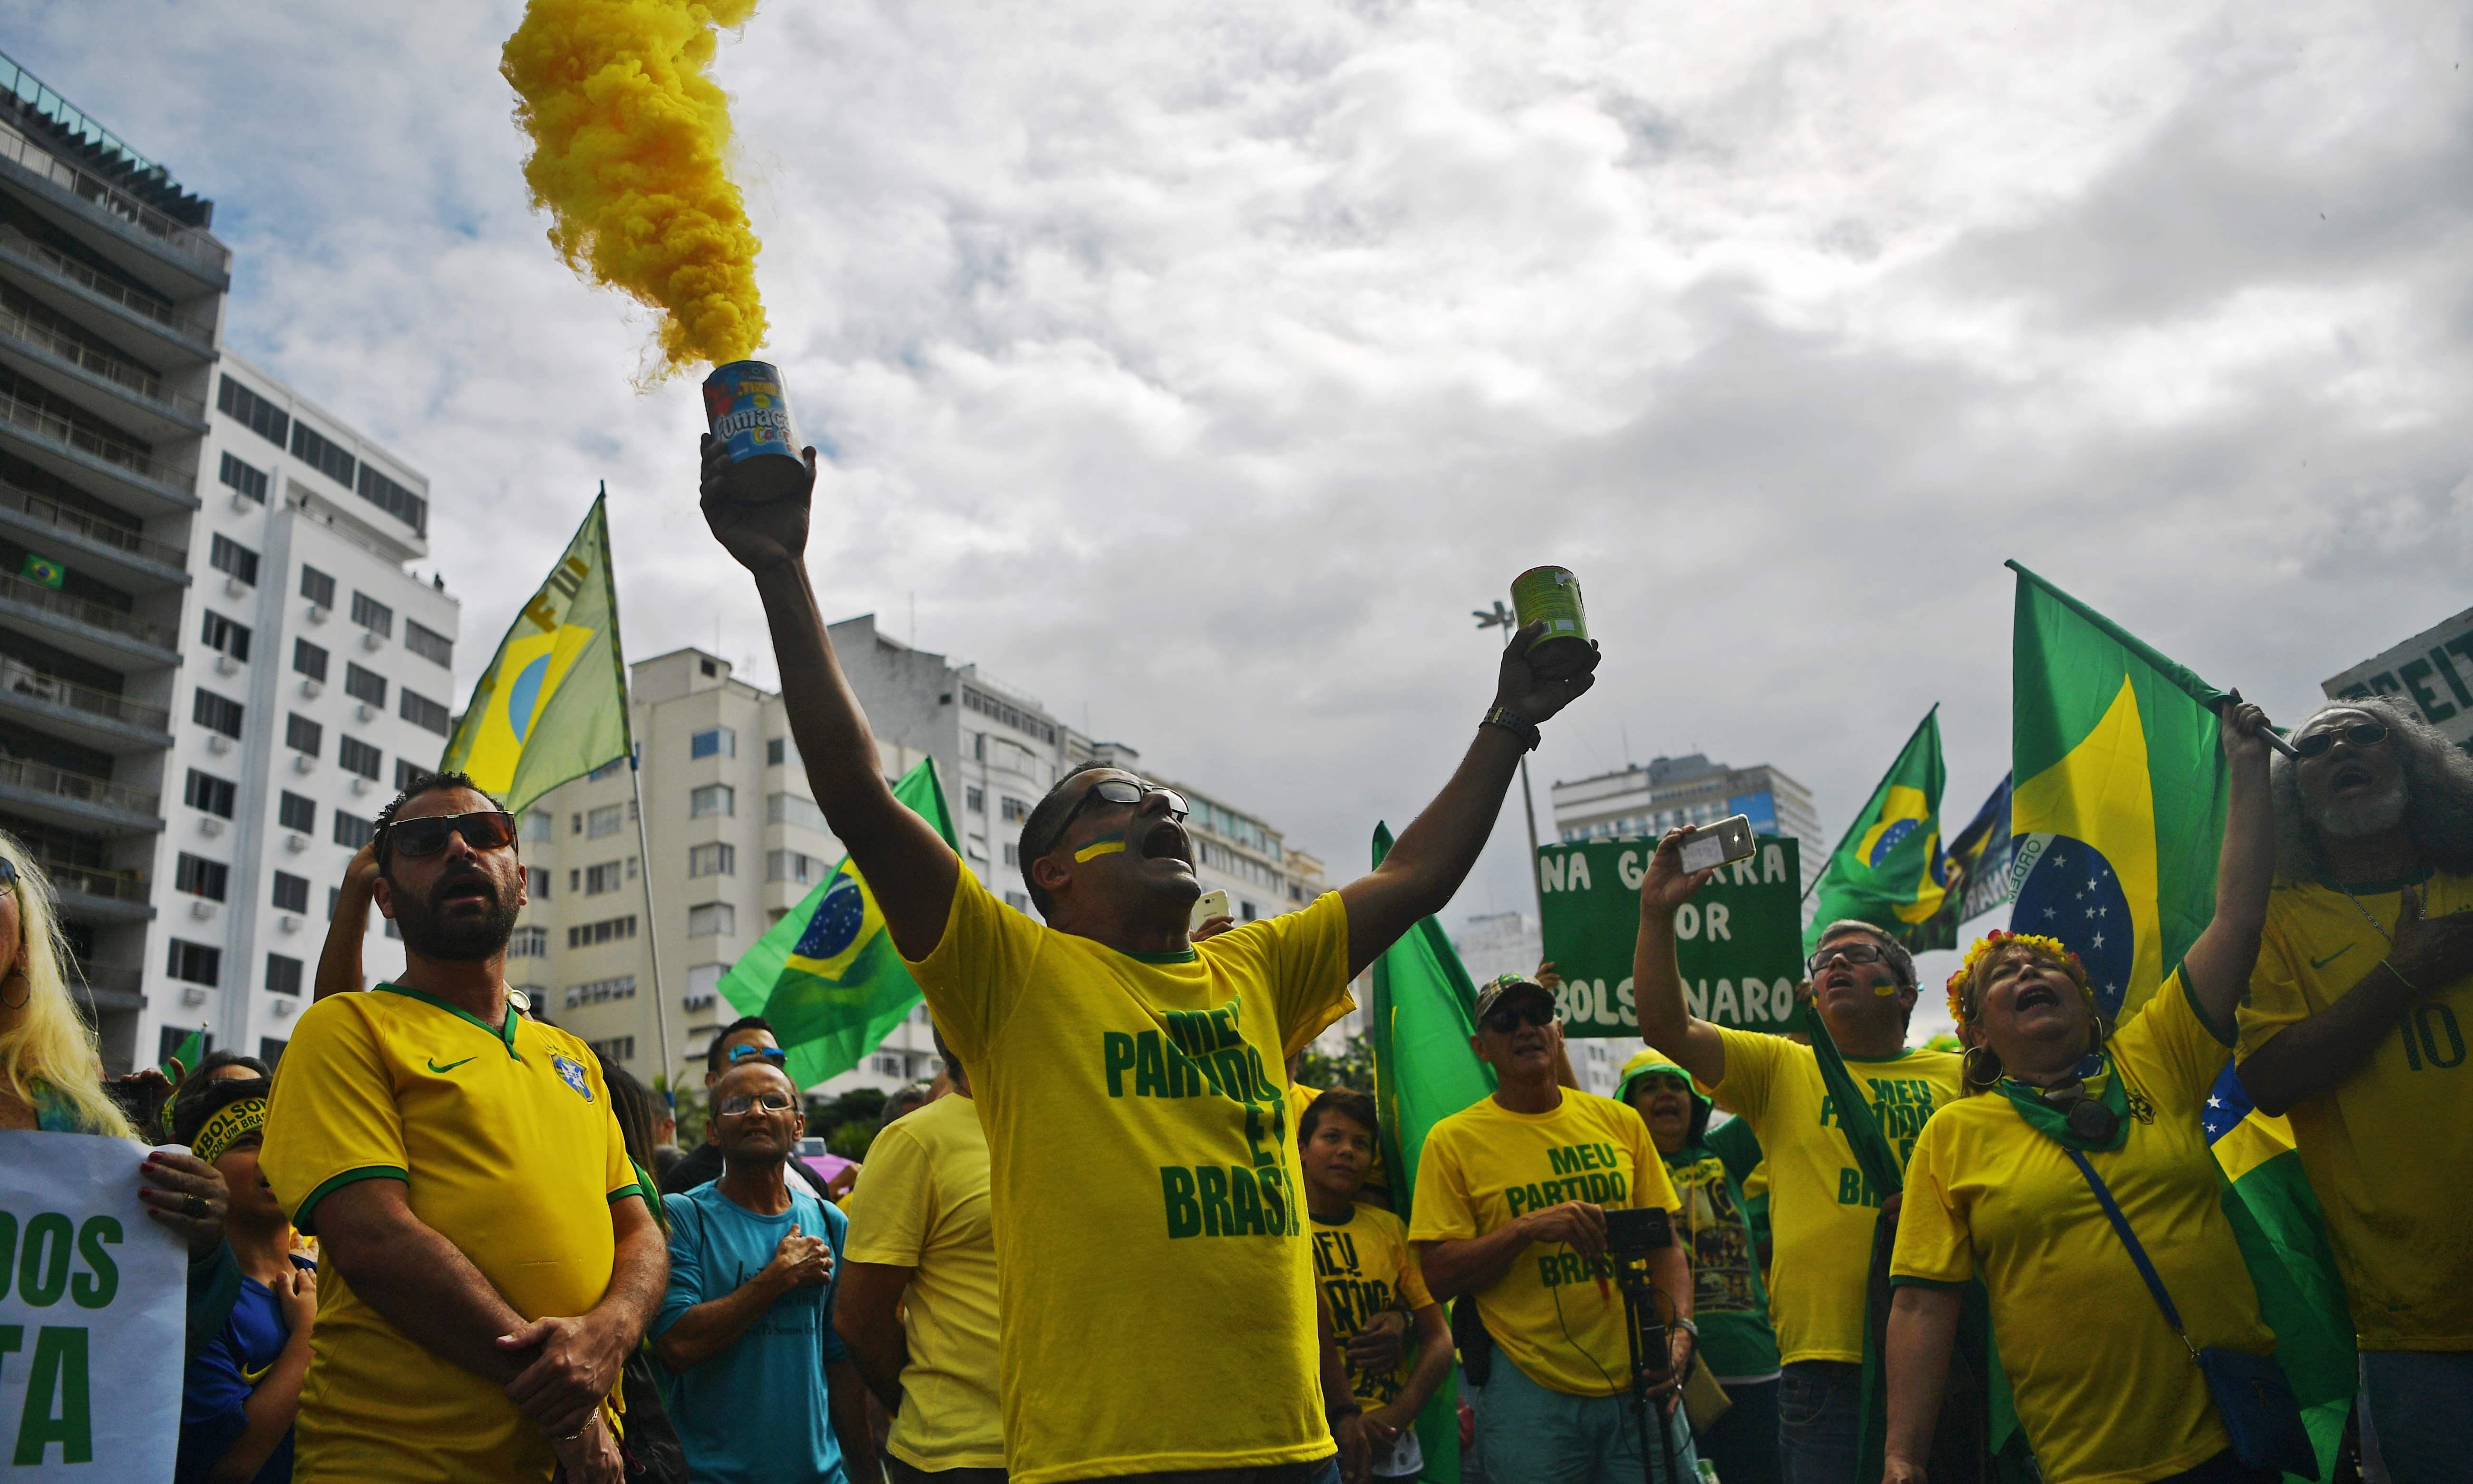 Bolsonaro supporters take to Brazil's streets as approval ratings drop